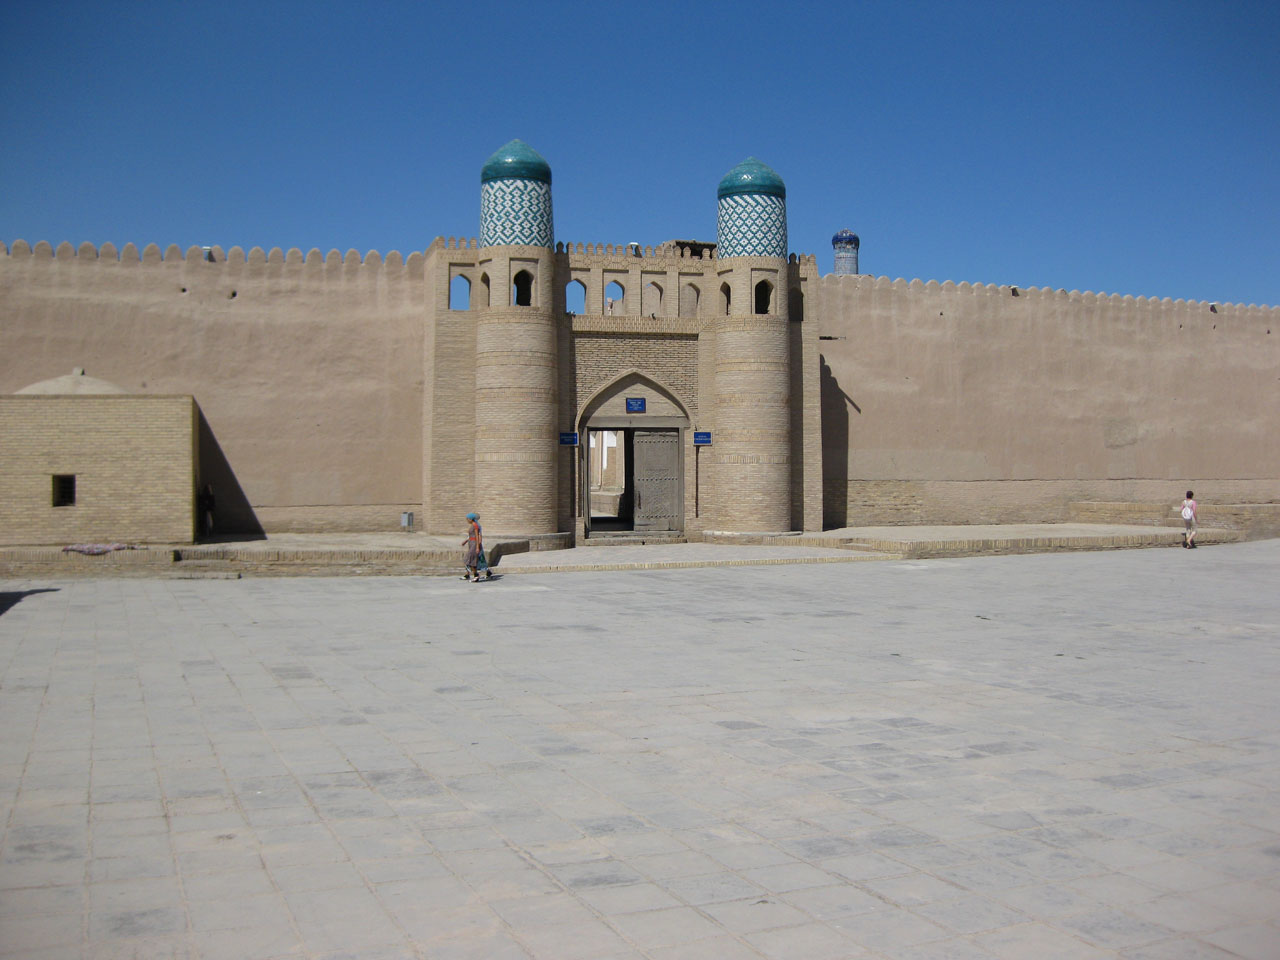 The Kuhna Ark, Khiva